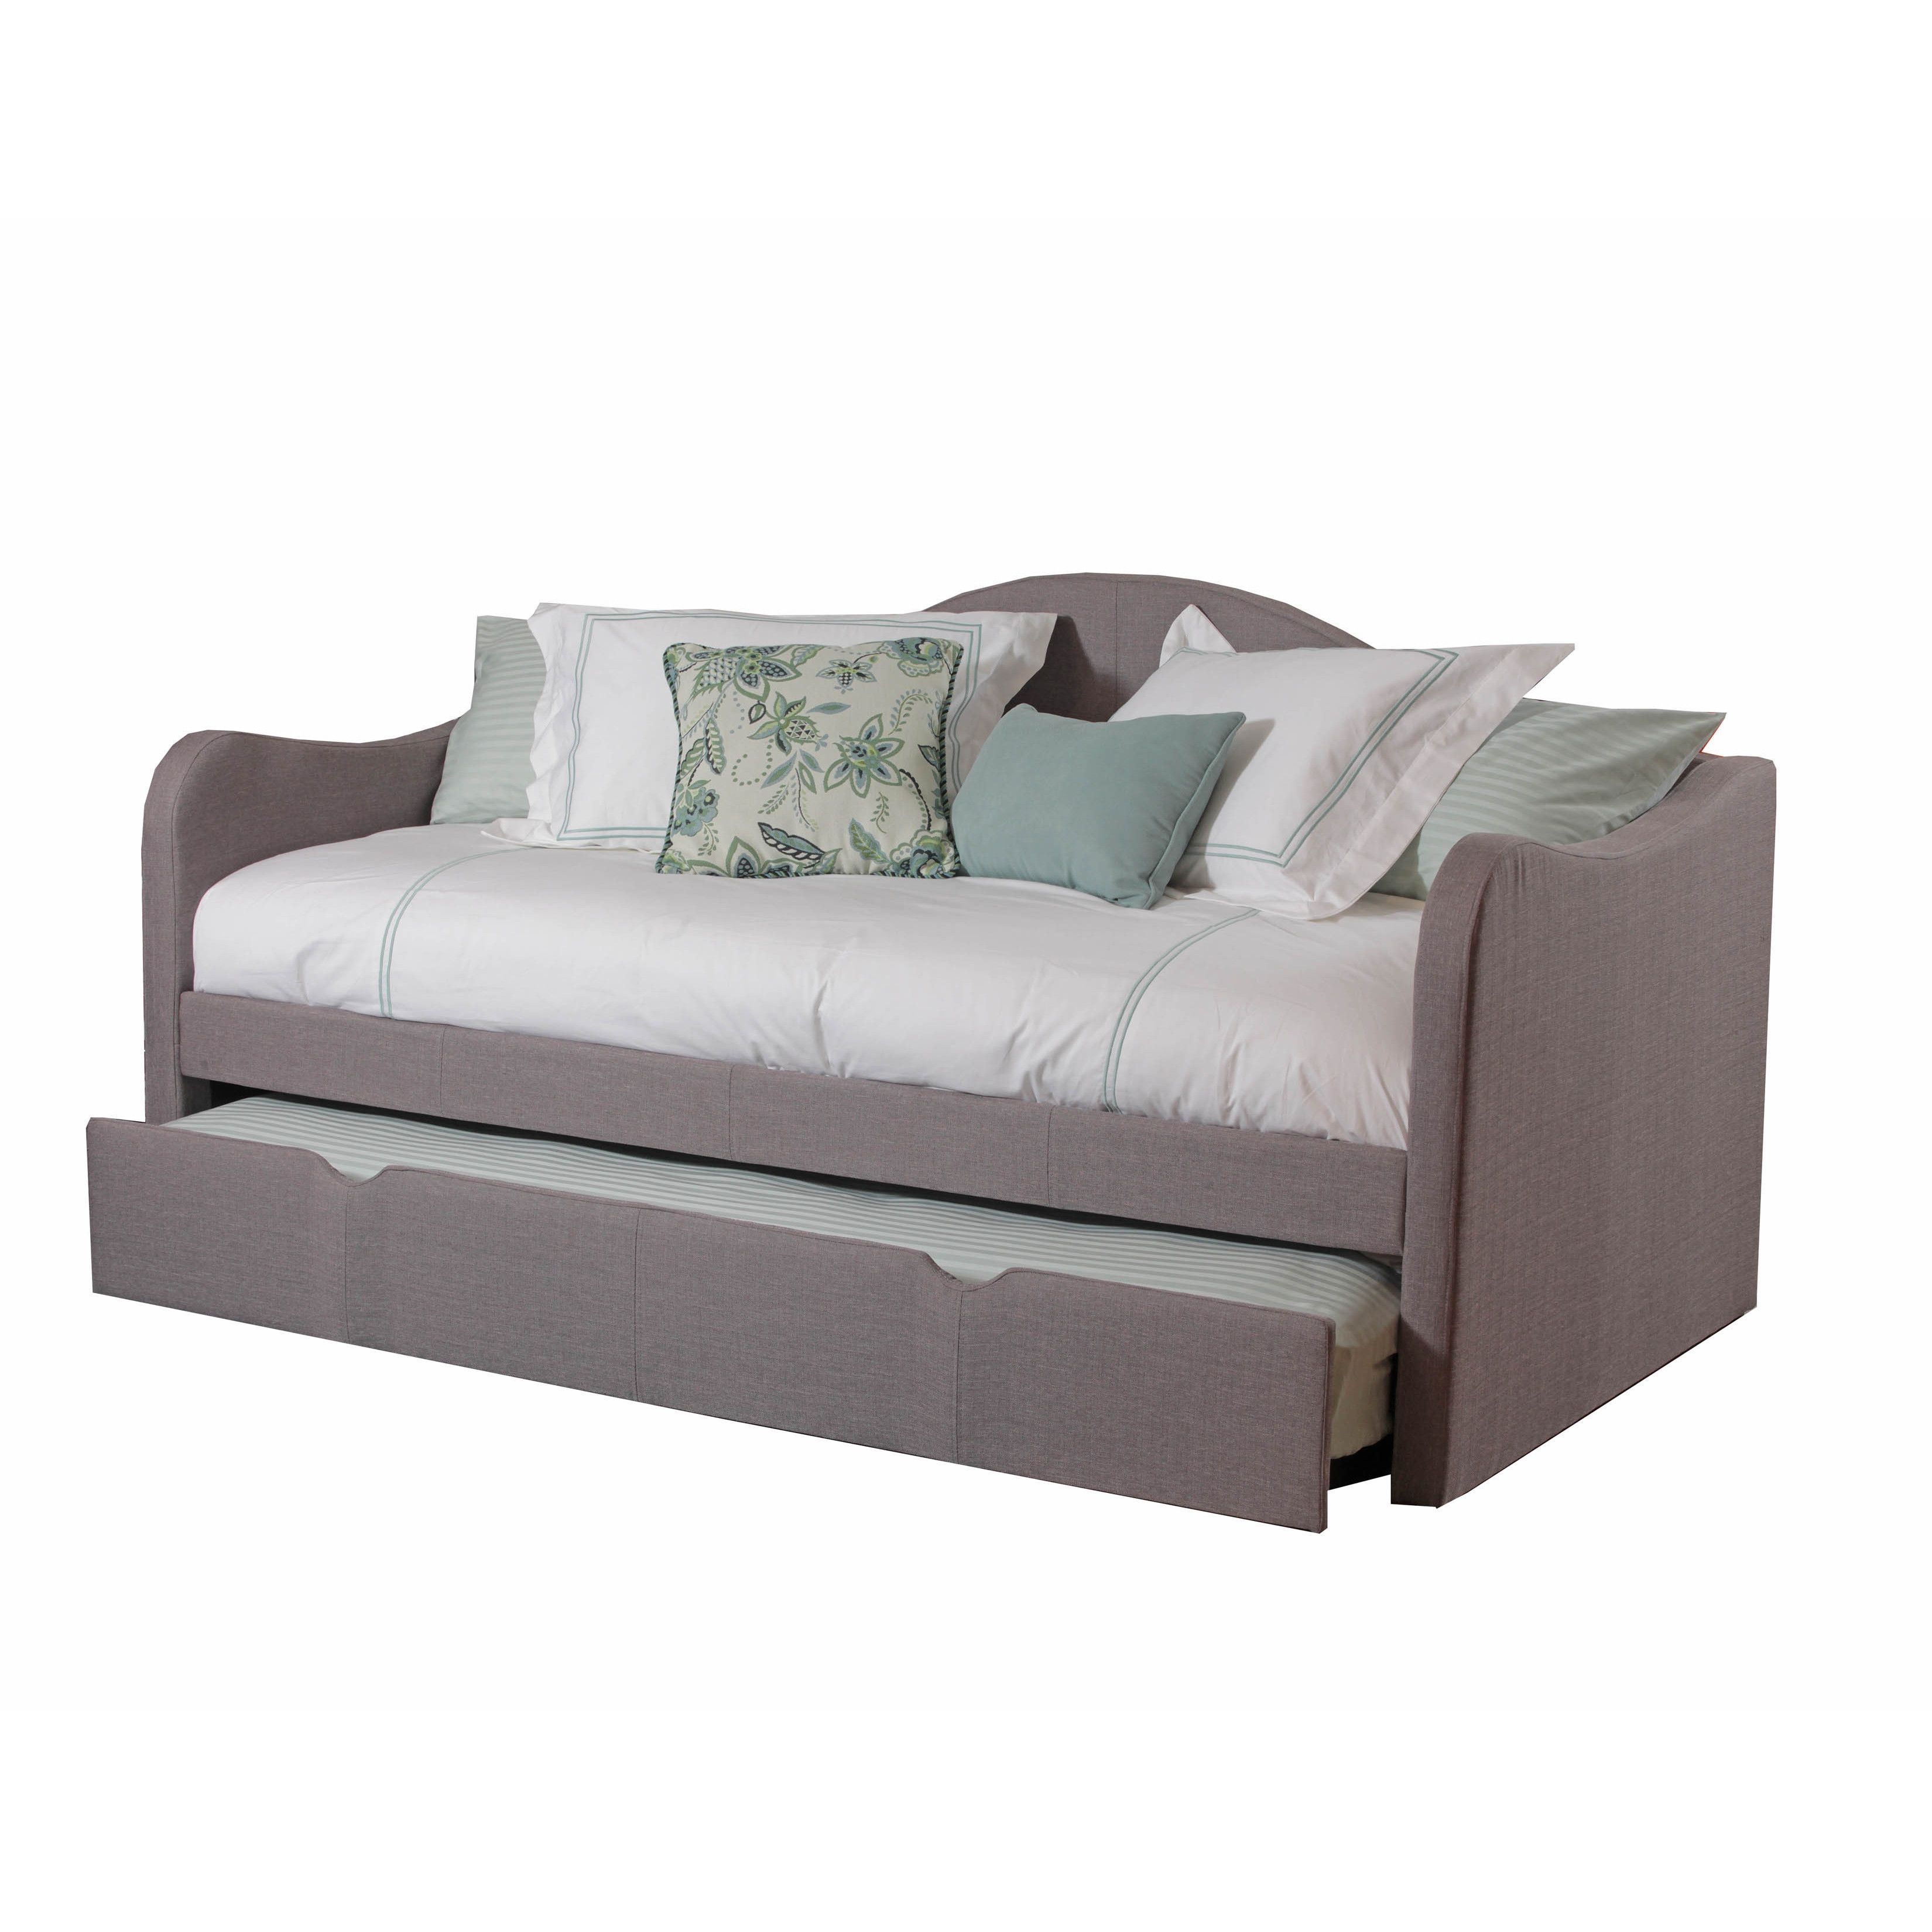 Daybed with trundle full size powell seraphina upholstered day bed  bedrooms daybed and room